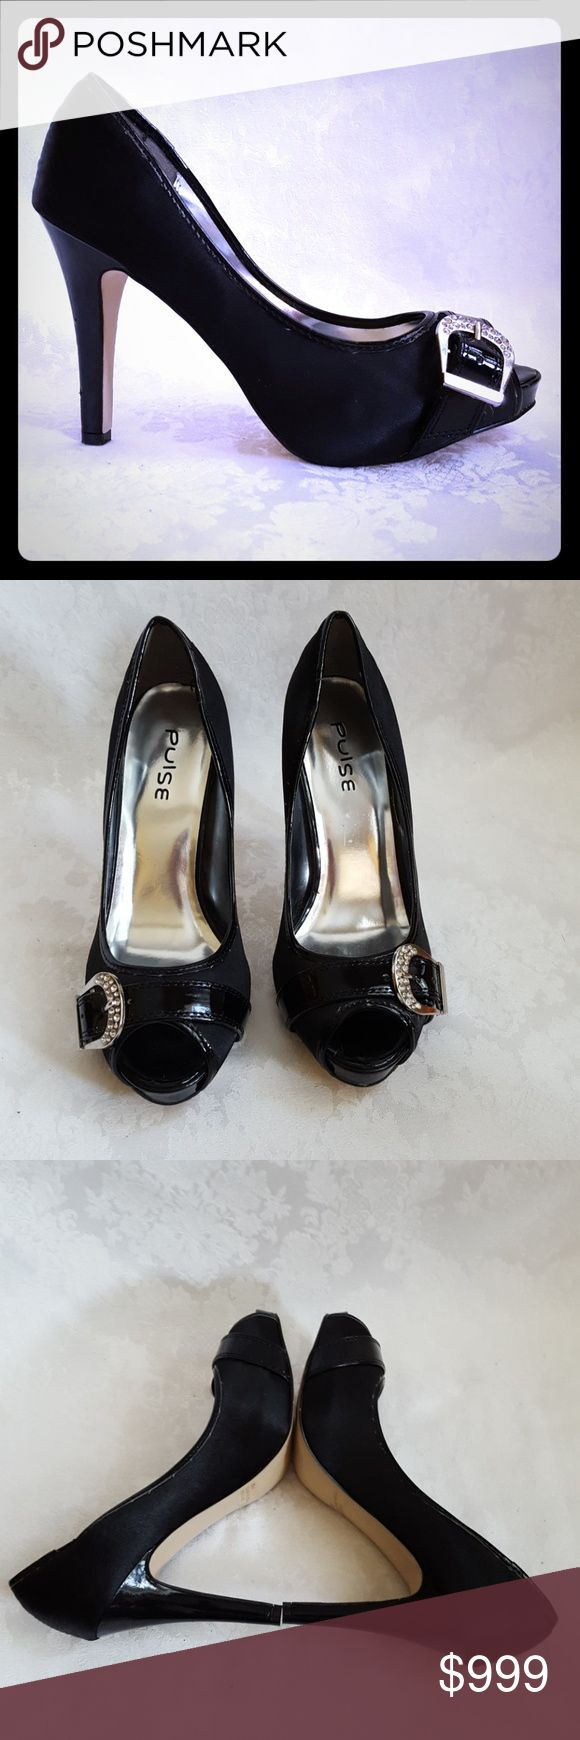 "🌺DISC SHIP🌺Black Silky & Patent Peep Toe  Heels Check out my other listings - 100's of 👠shoes👠, 👢boots👢 and 👜bags👜. Bundle 2 or more and save money! 💲💵💲  Like New!! Pulse black silky & patent peep toe shoes with 4 1/2"" patent heel. Rhinestone sparkle and bling decorative buckle.   Excellent condition! Smoke free and pet free home. Pulse Shoes Heels"